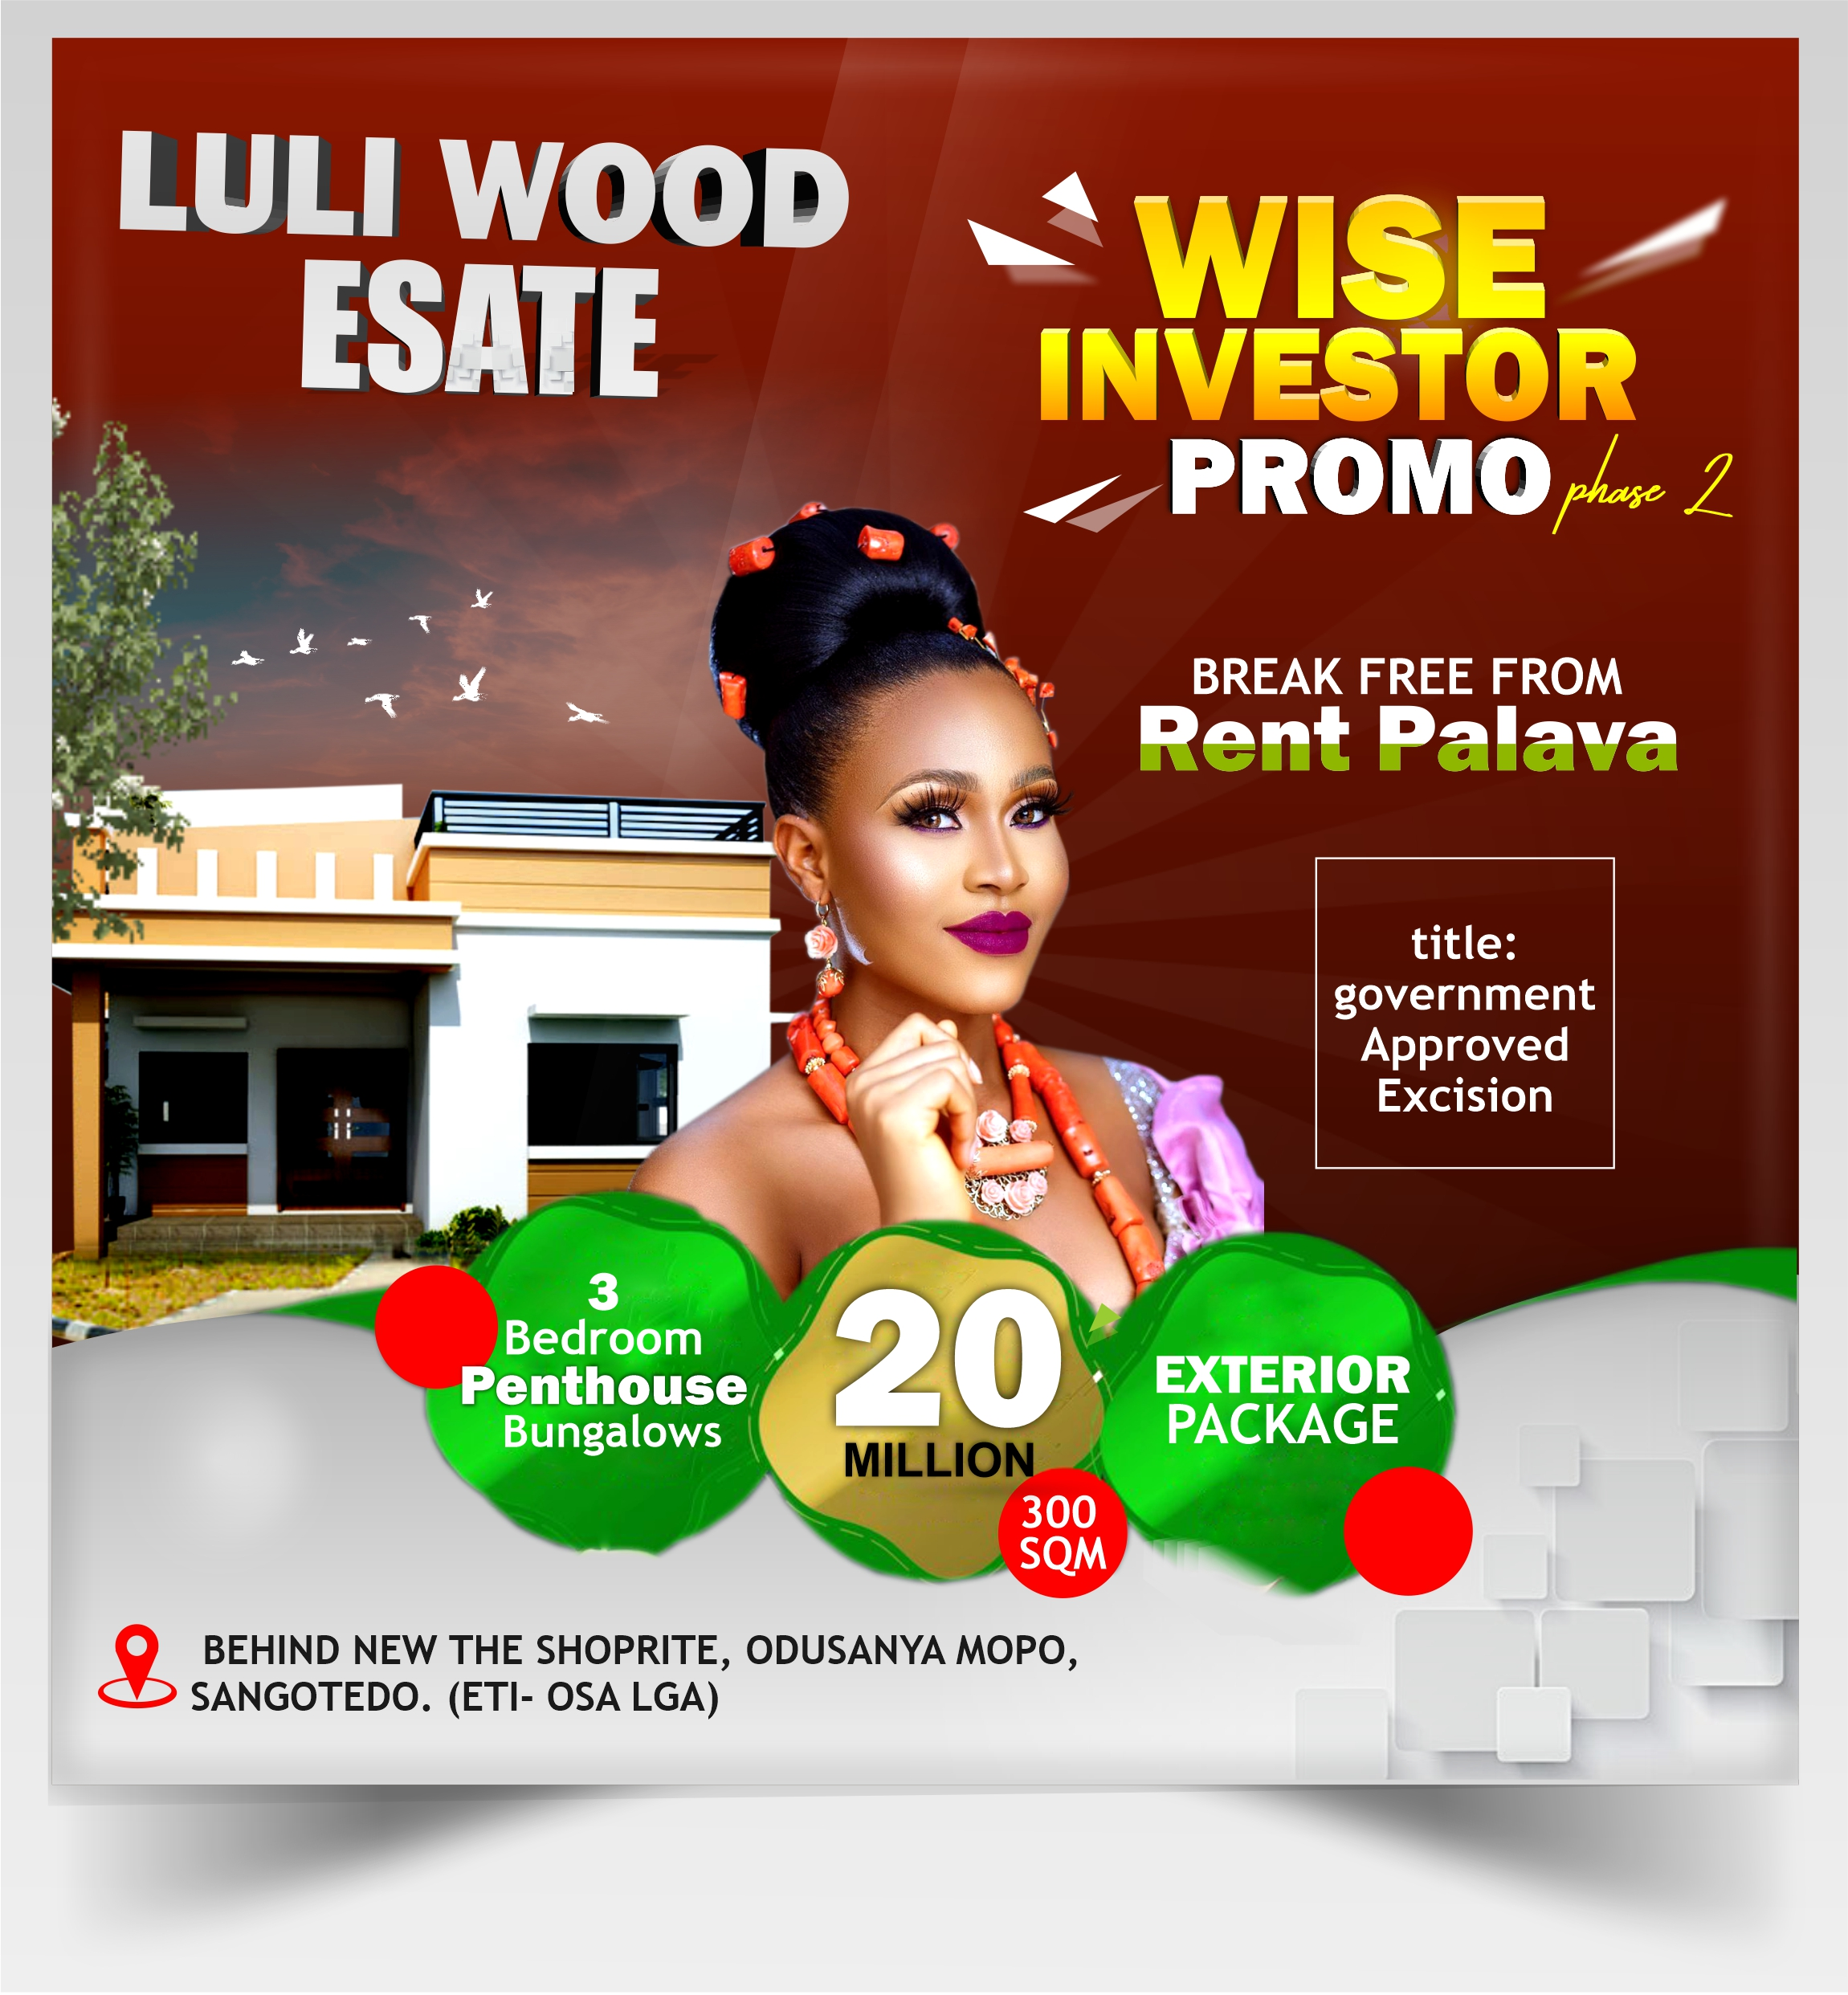 WISE INVESTOR PROMO PHASE 3 BEDROOM PENTHOUSE BUNGALOW EXTERIOR WEBSITE